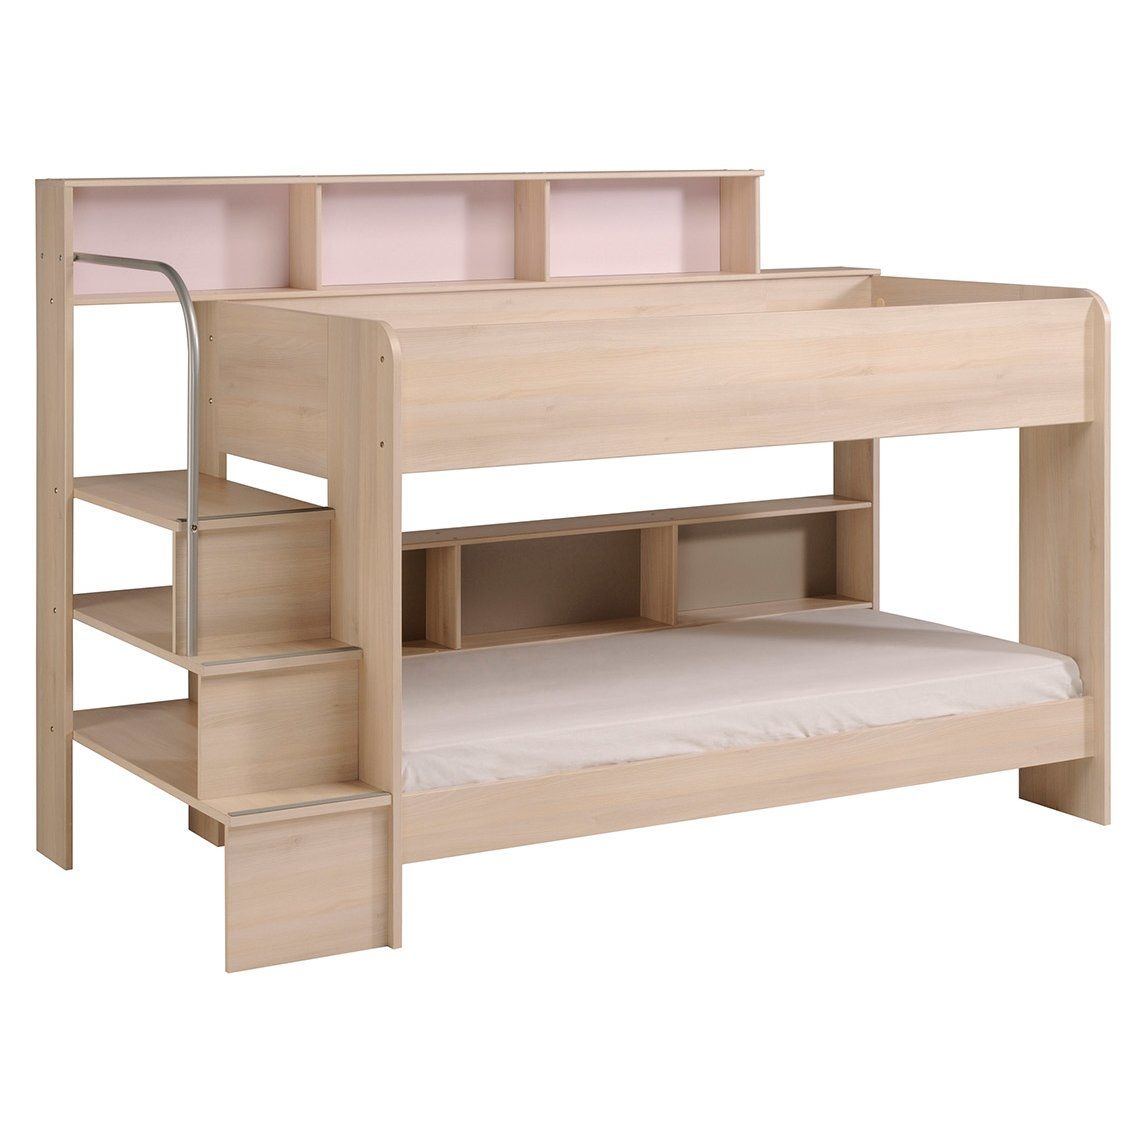 Bibop twin over twin bunk bed with trundle kids bedroom